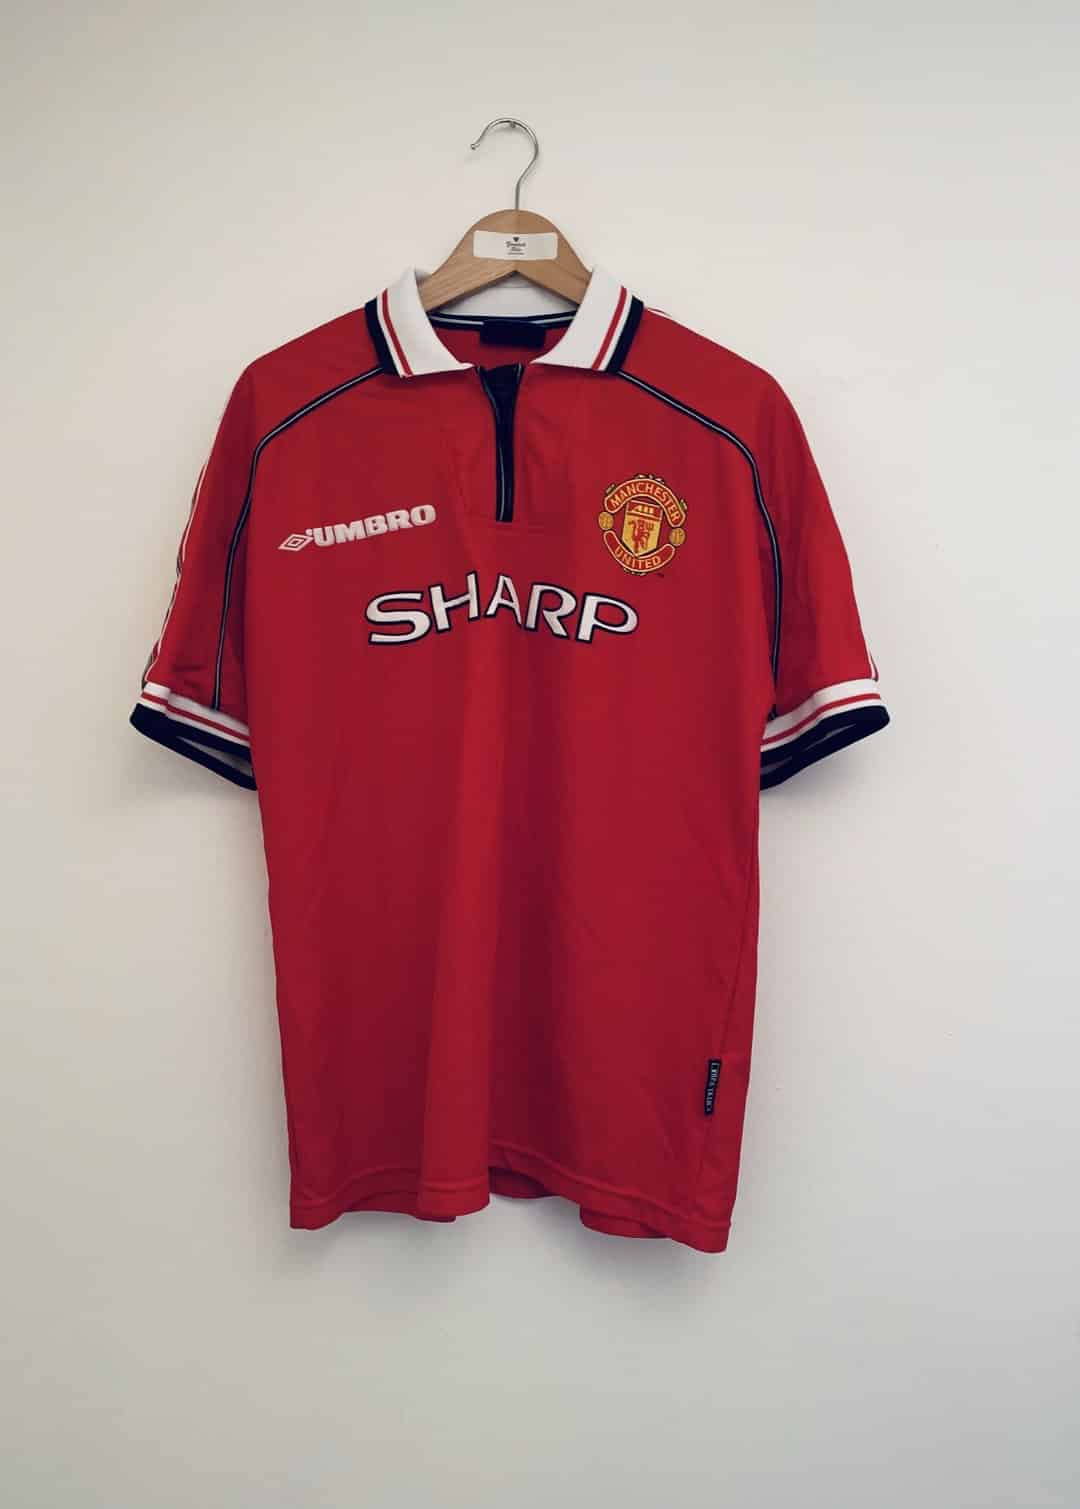 maillot-manchester-united-1999-2000-umbro